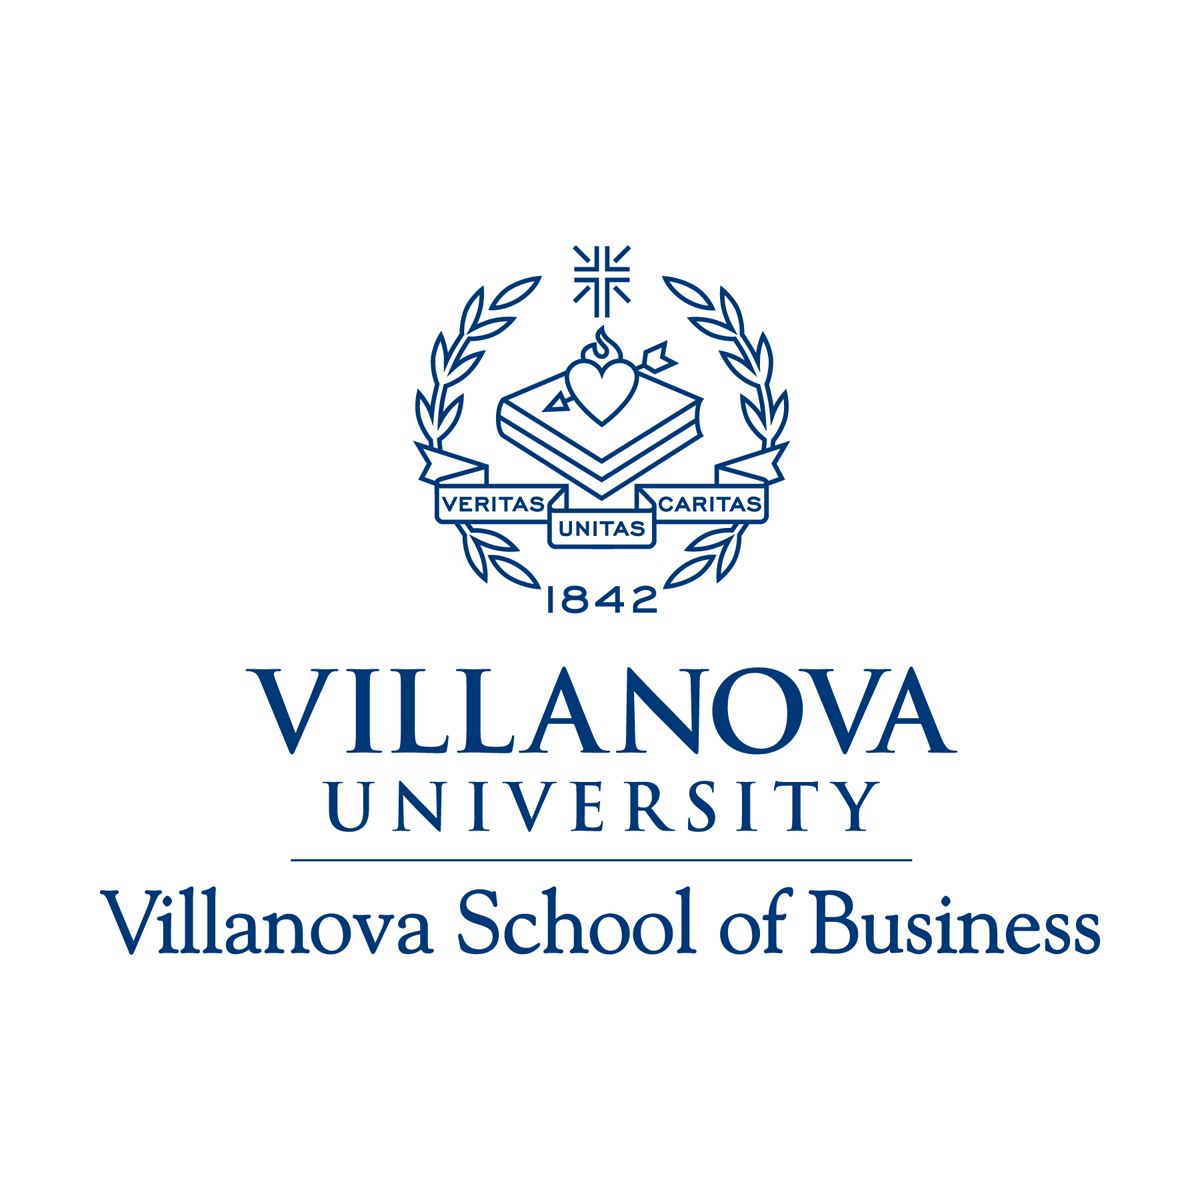 Villanova University Villanova School of Business